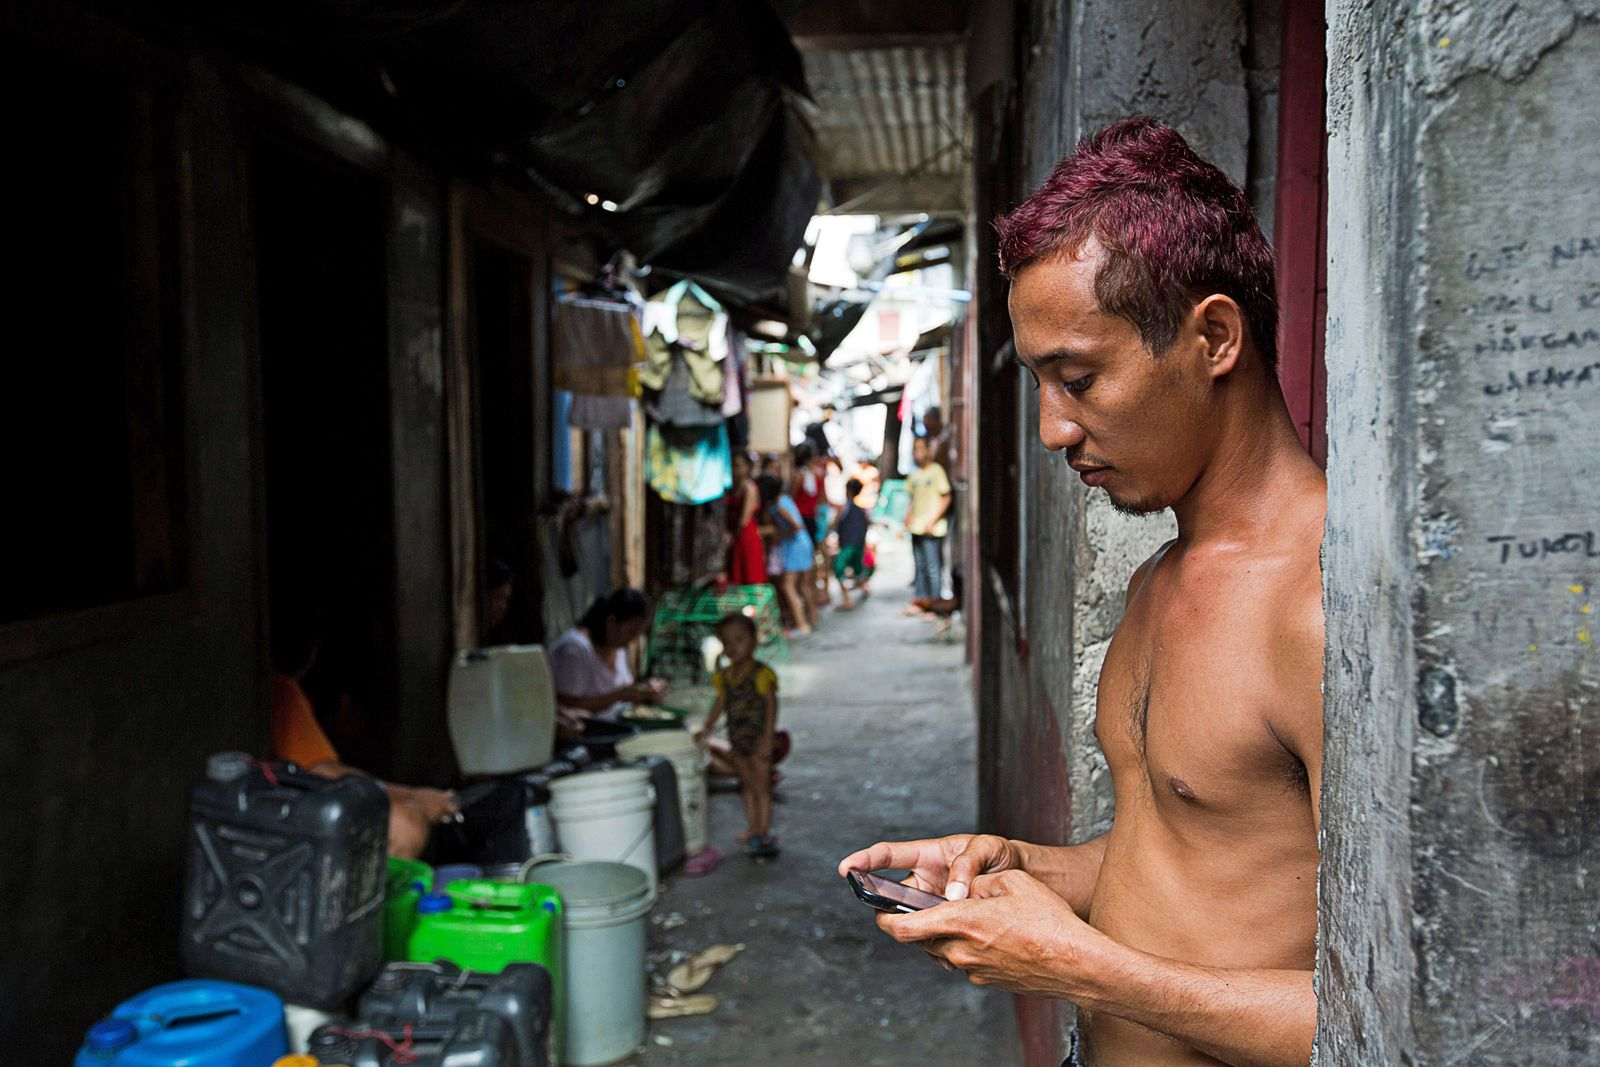 General Images Of The Tondo Slum As Philippine GDP Growth Expected To Accelerate In Second Half Of Fiscal Year